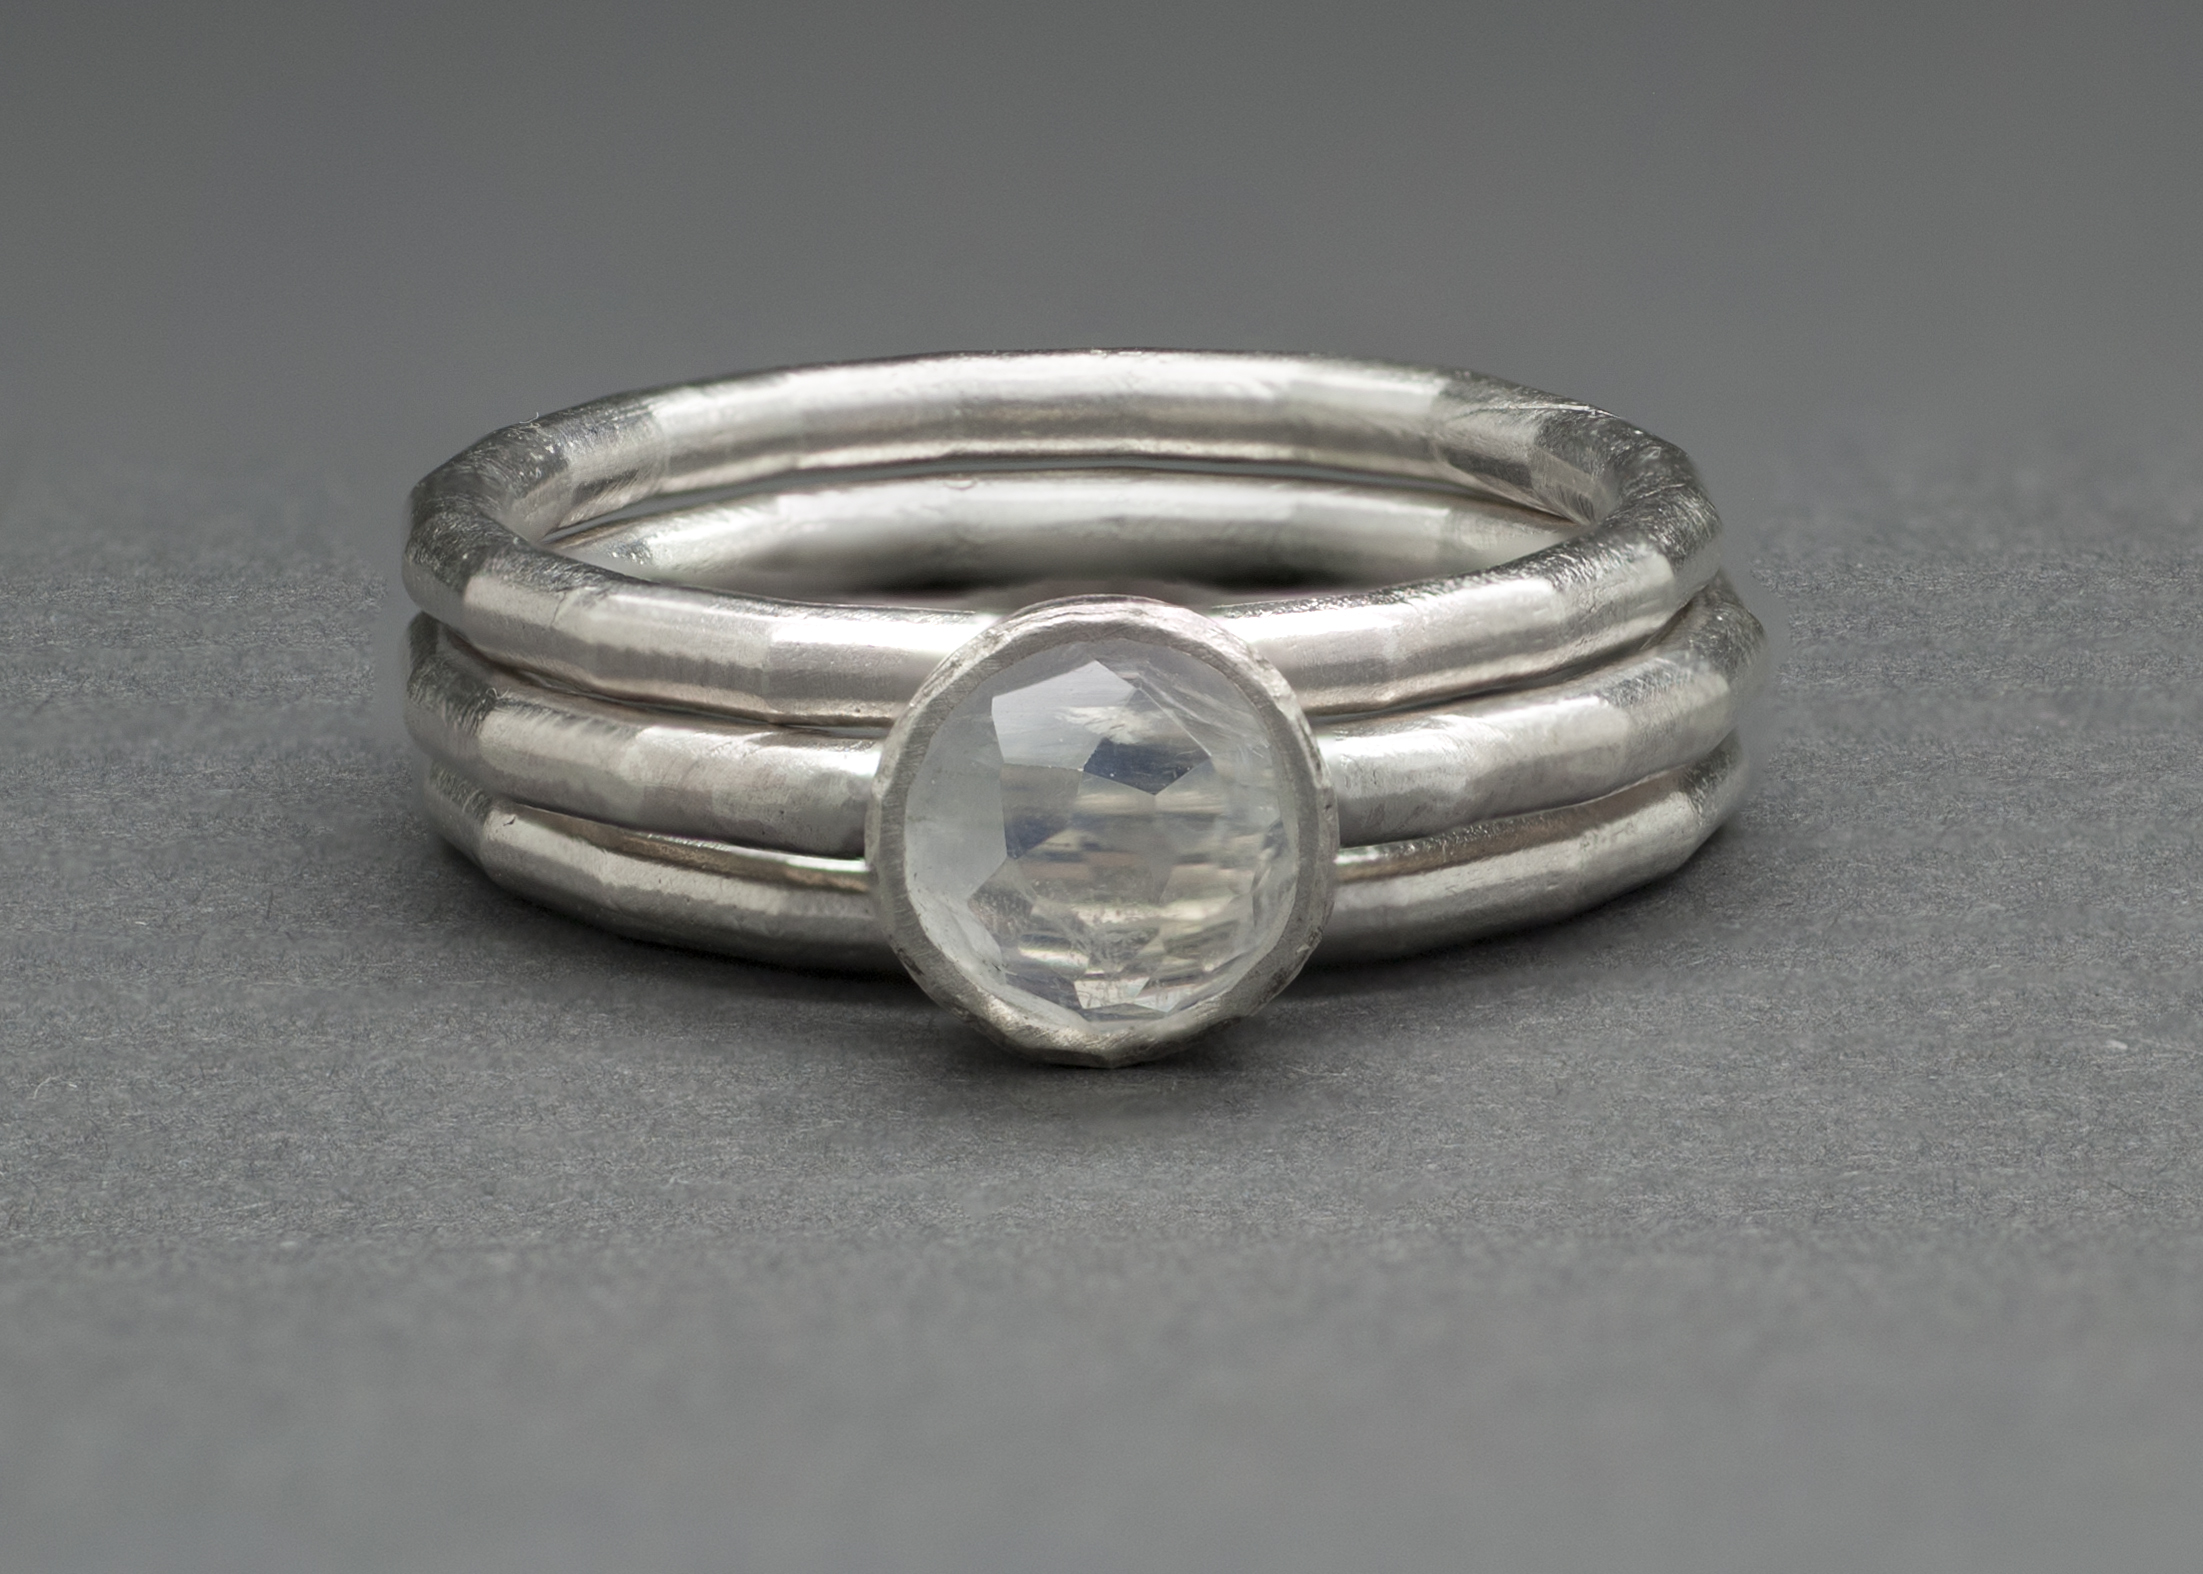 6mm rc moonstone 2 twiggy bands stack FS.jpg